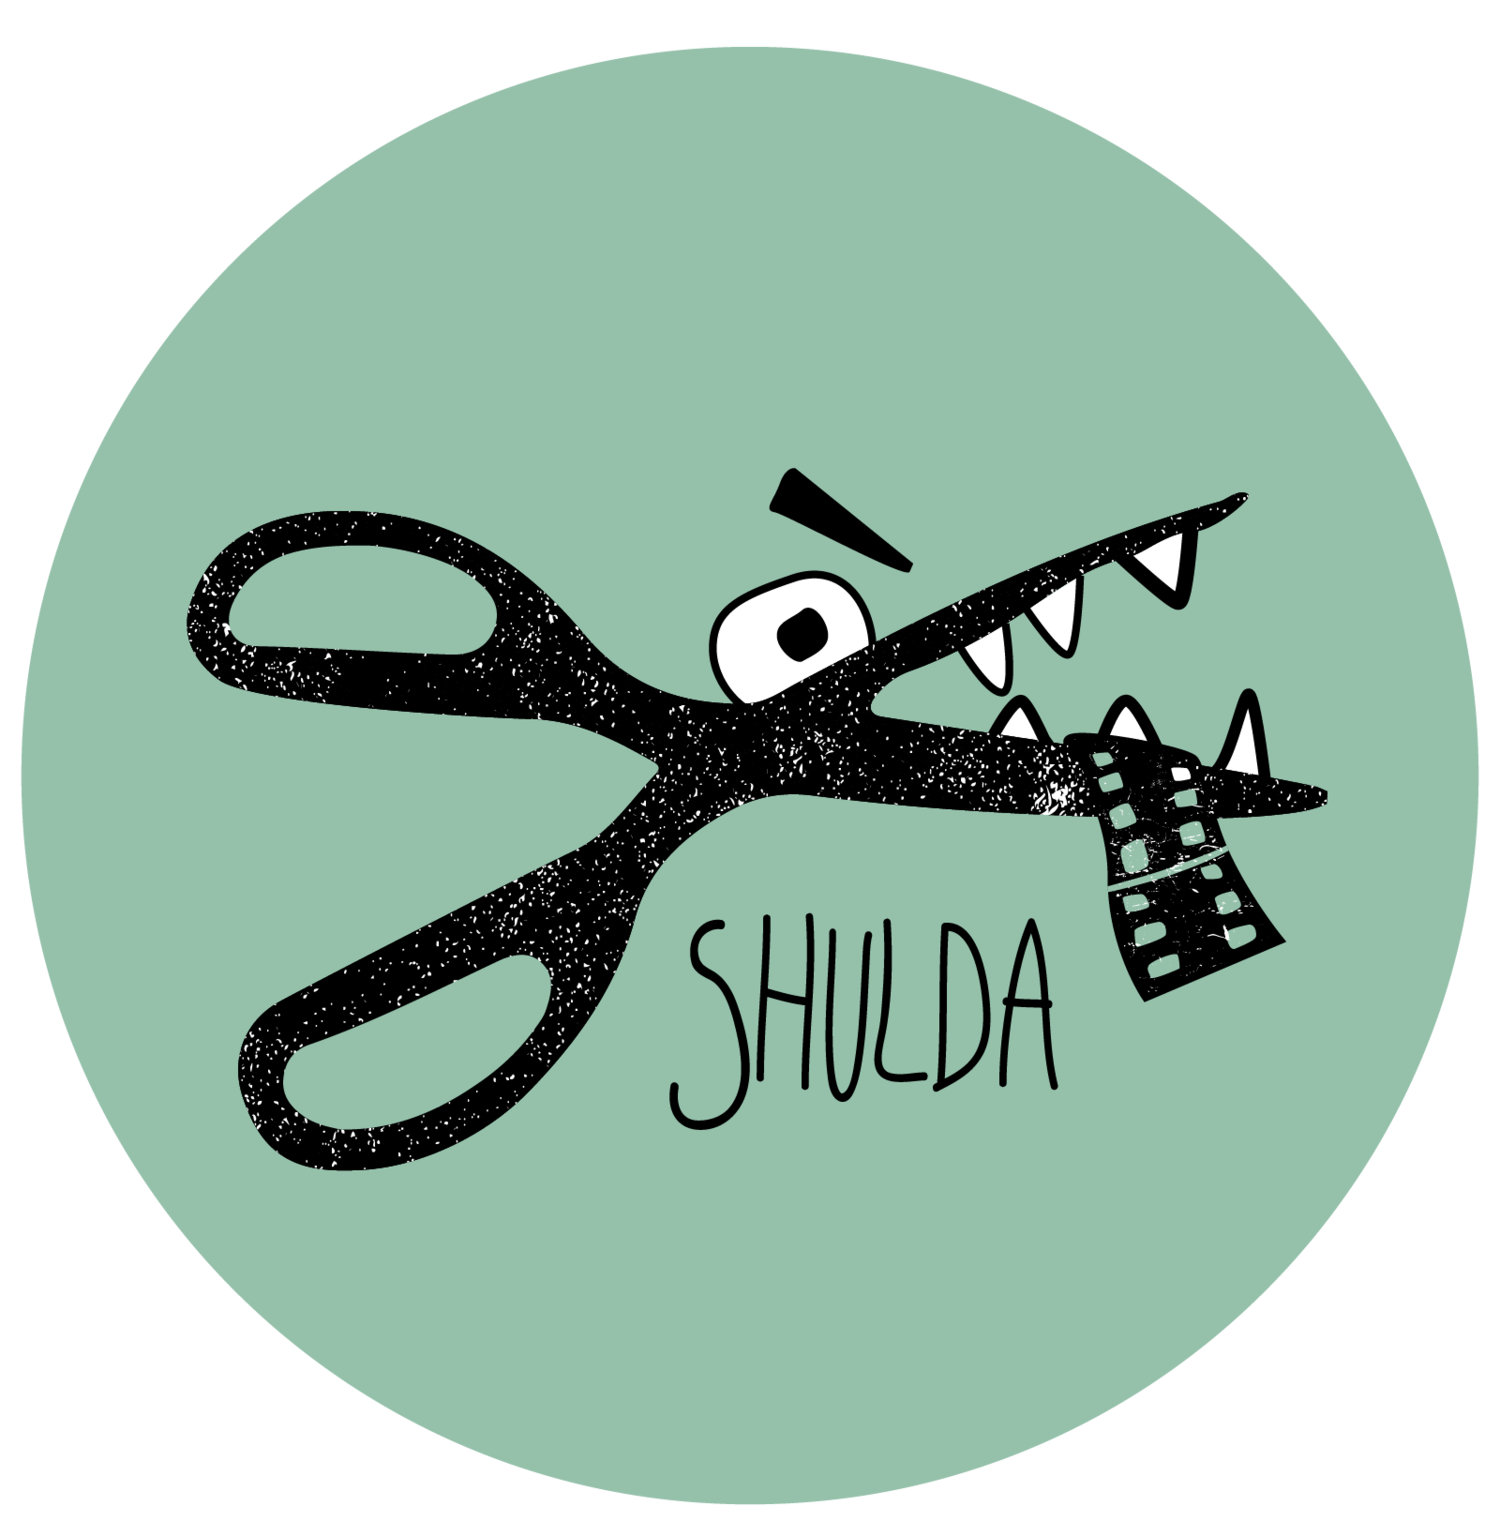 Vfx matt shulda home. Clipart scissors animation